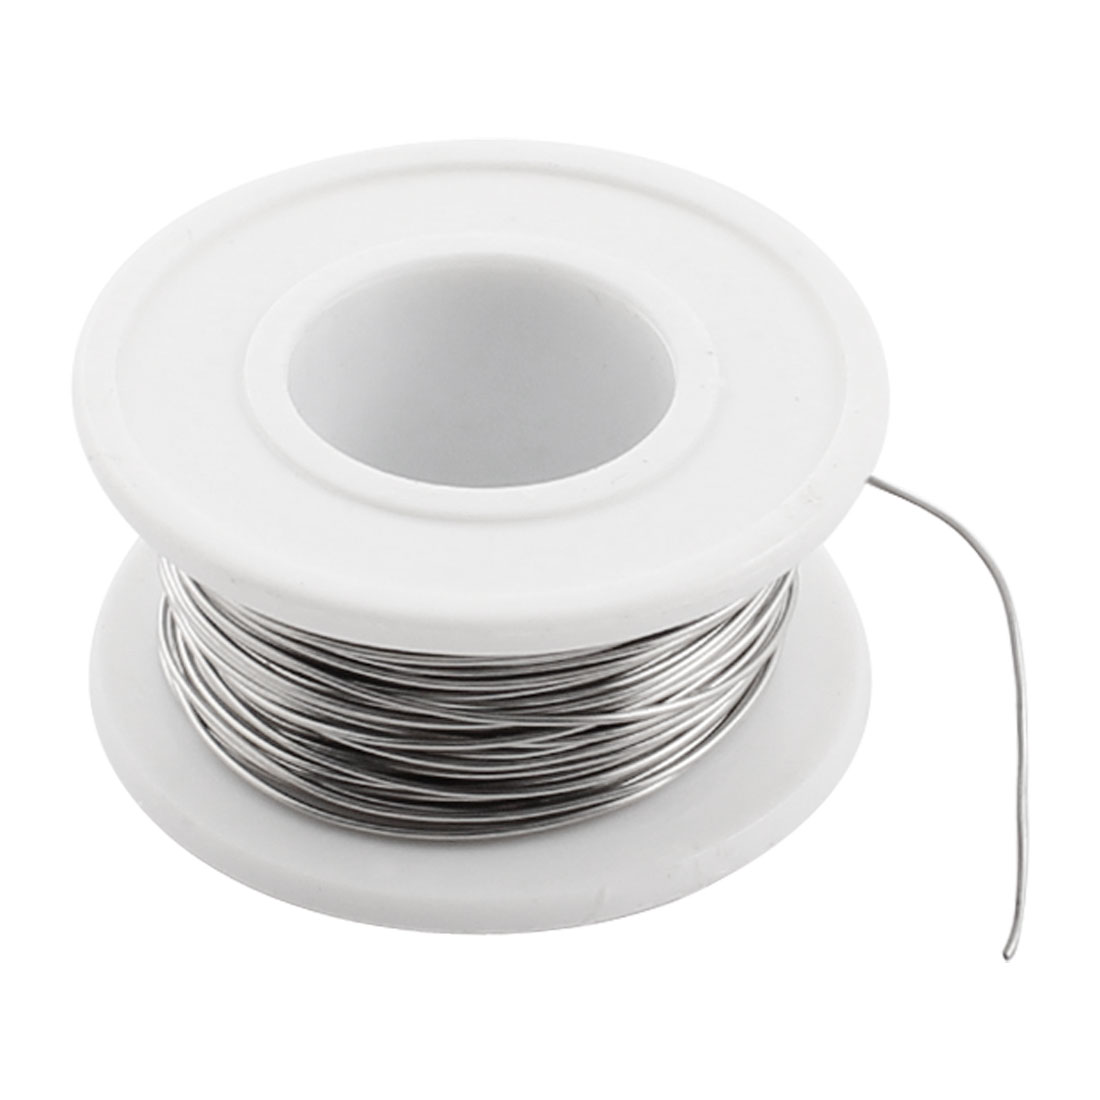 15Meter 50ft 0.55mm AWG23 Gauge Cable Nickel Copper Alloy Resistance Resistor Wire for Heating Elements